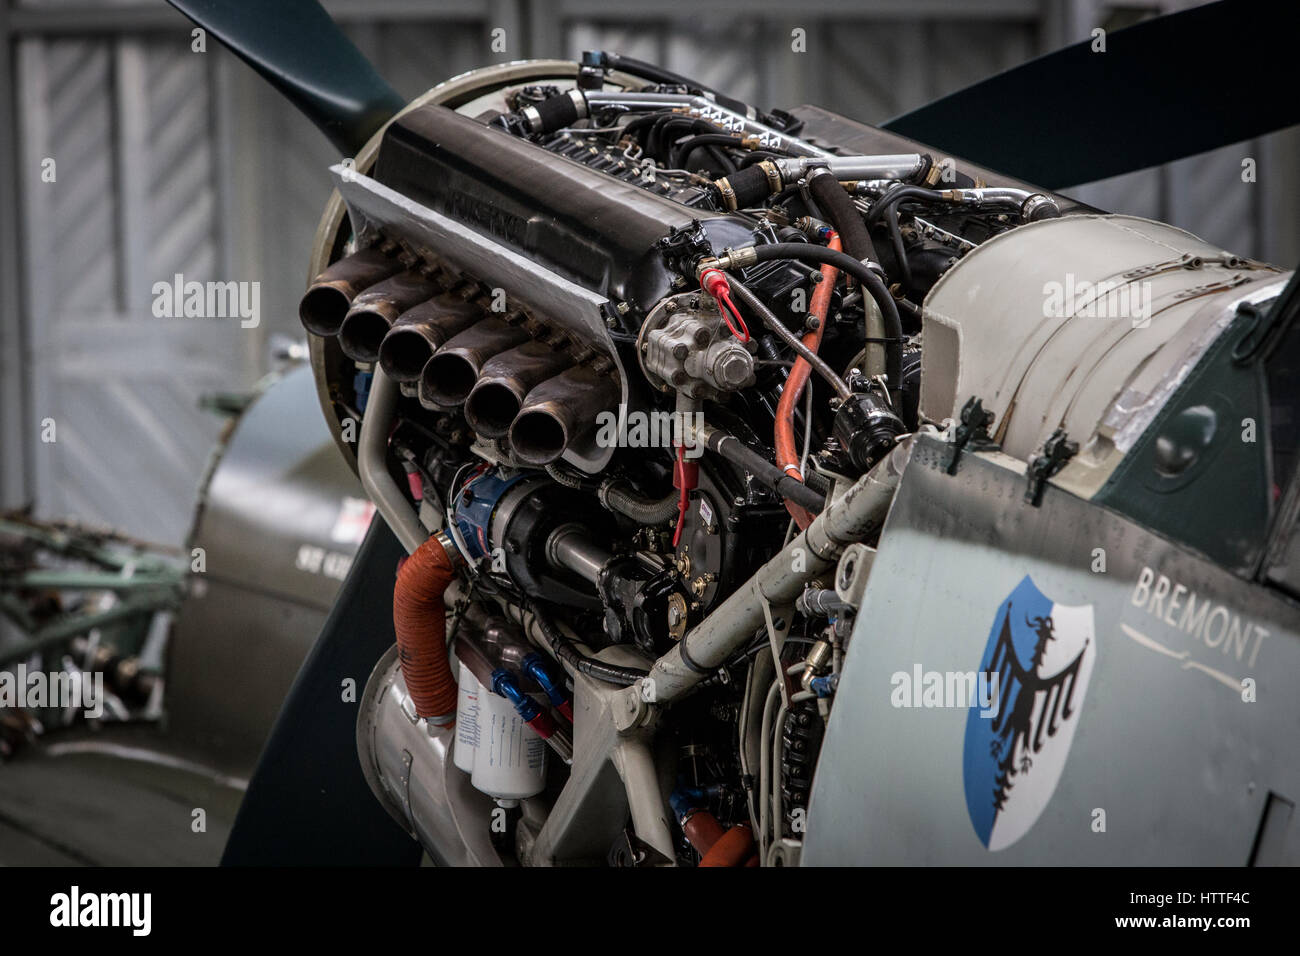 a hispano buchon shows its rolls royce merlin engine at the aircraft stock photo 135763052 alamy. Black Bedroom Furniture Sets. Home Design Ideas